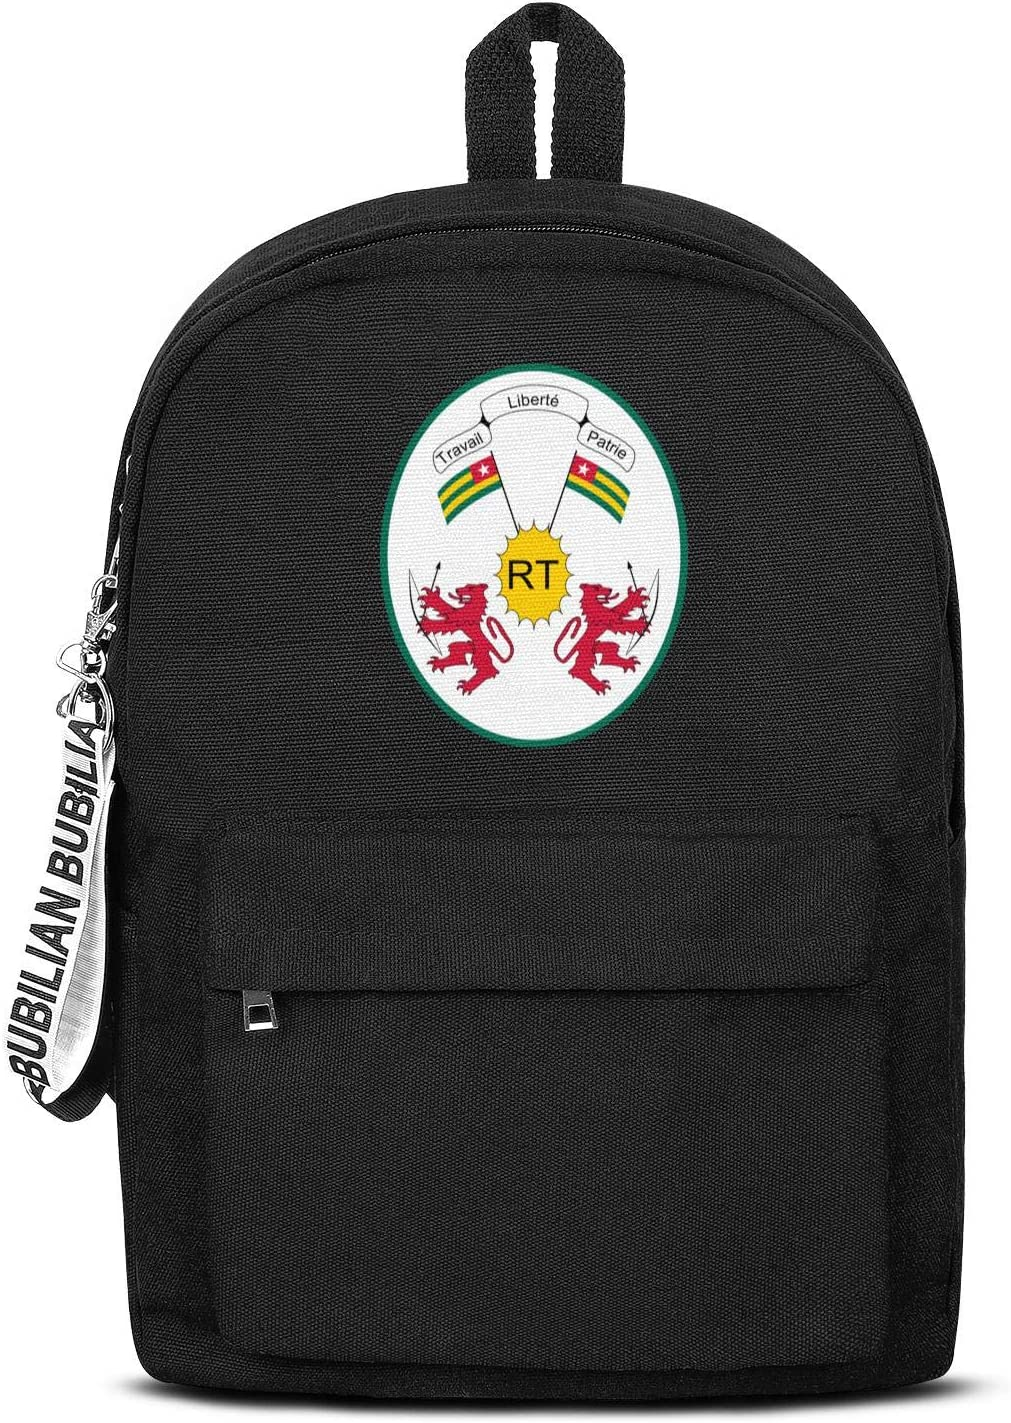 Travel Laptop Backpack Singapore Flags Of Countries Moon Star College Rucksack for Travel Outdoor Camping Computer Bag